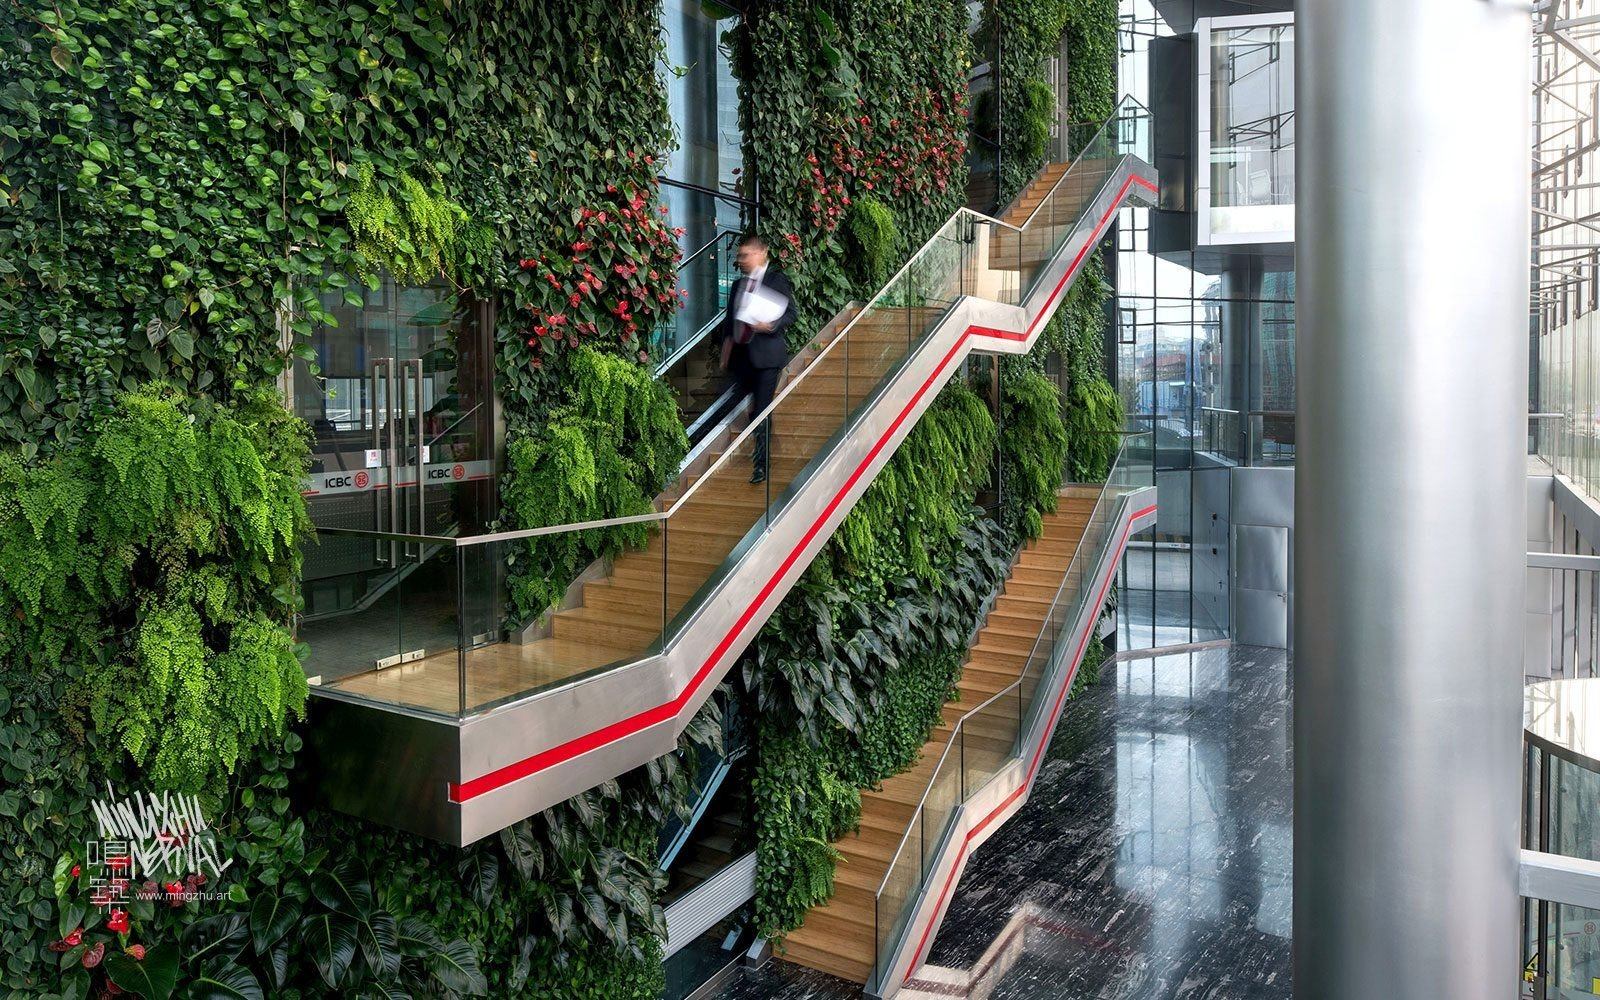 At Mingzhu Nerval, we thrive at creating the most beautiful vertical gardens in the world. For ICBC, we created an enormous living wall design - Shanghai, 2012.